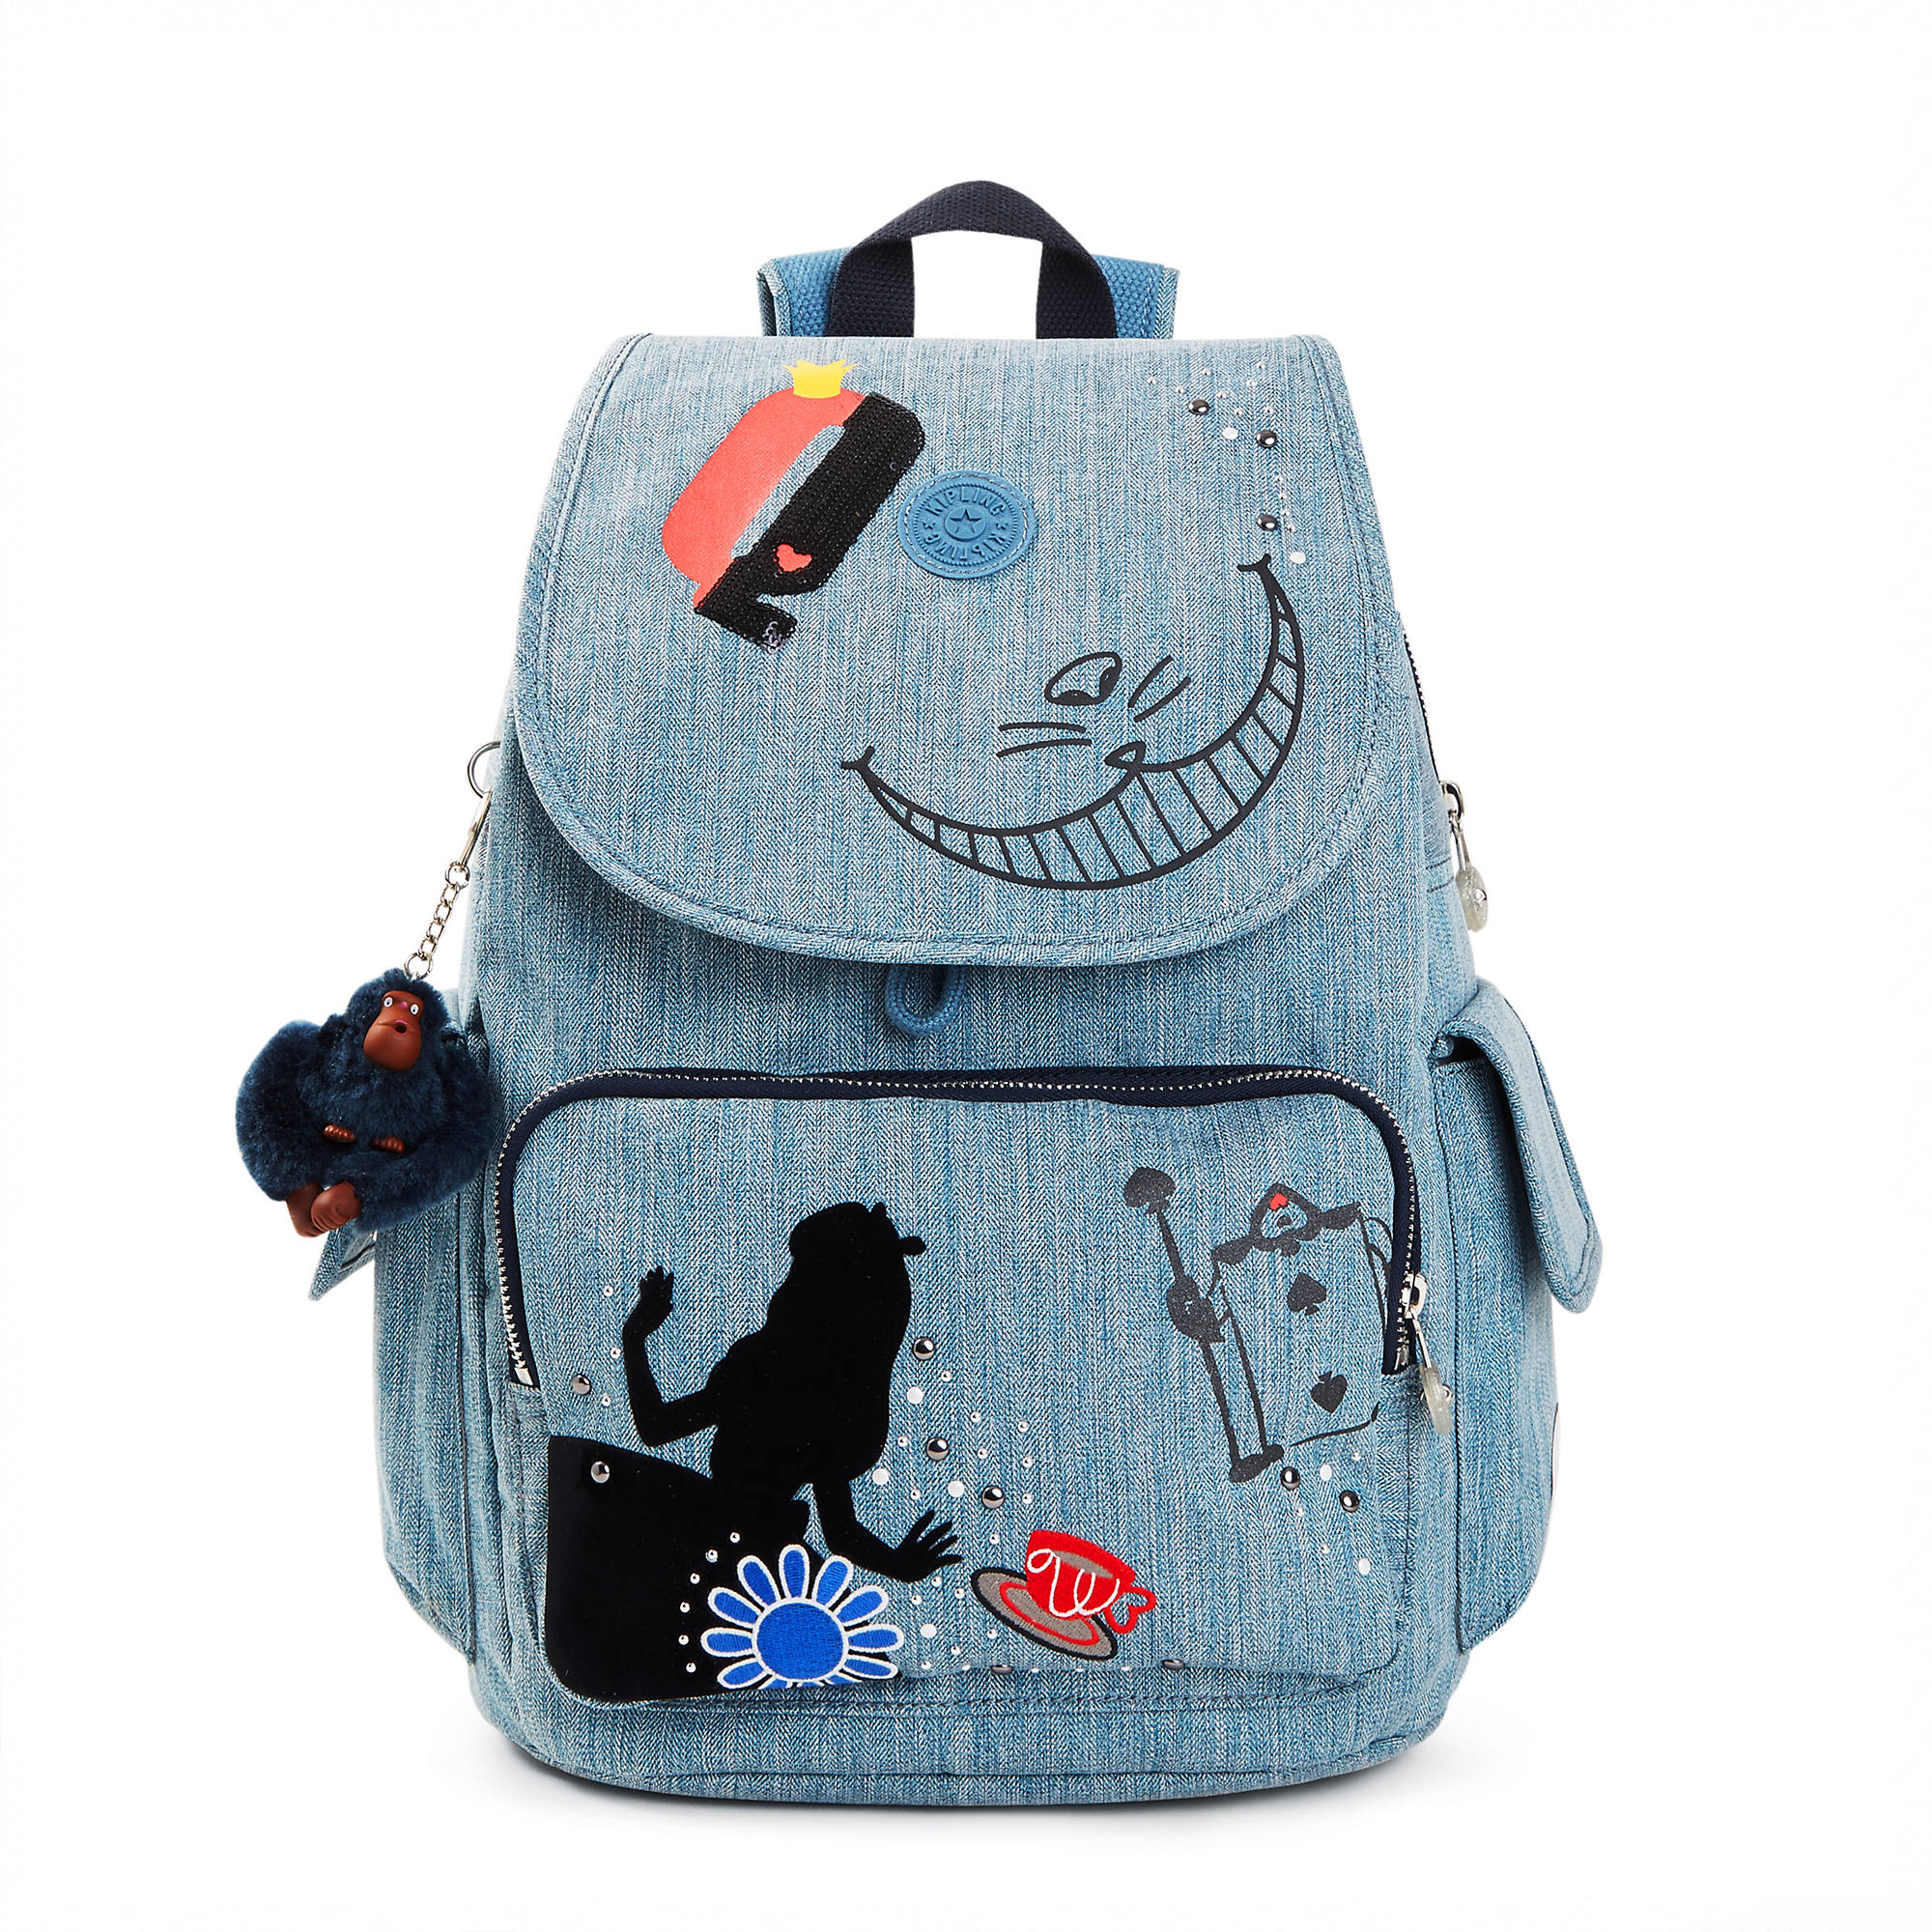 City Wonderland Alice Pack Printed Backpack Disney's In Ib7gyvfY6